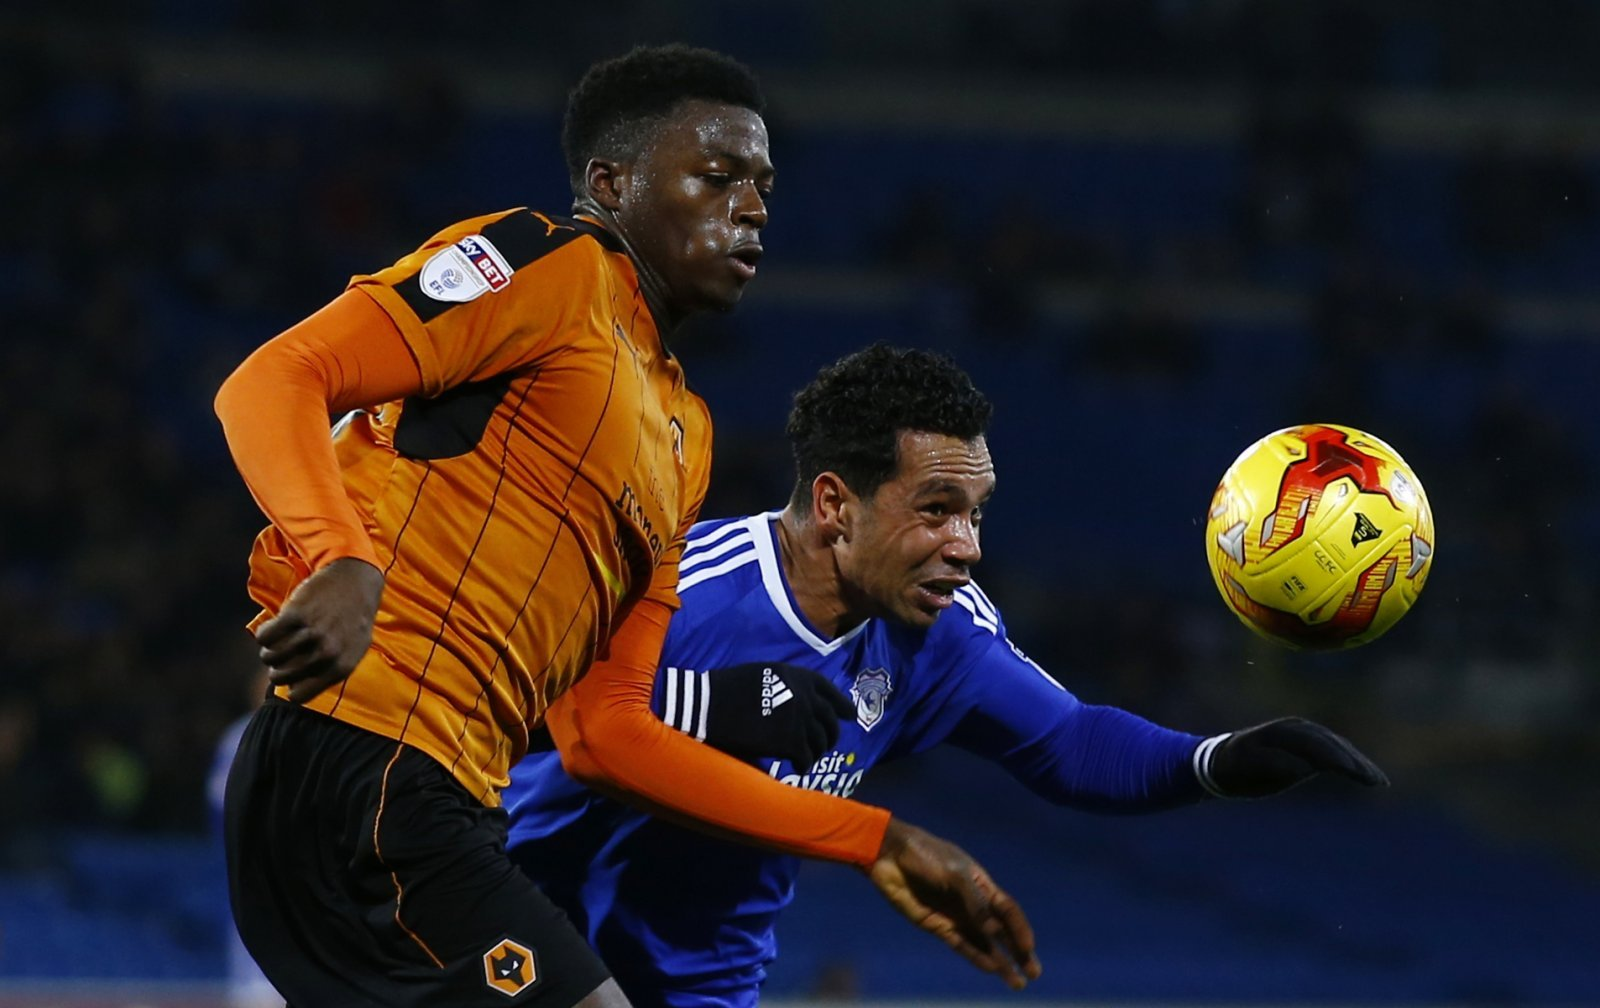 Sheffield Wednesday fans take to Twitter to laud Iorfa after late debut equaliser